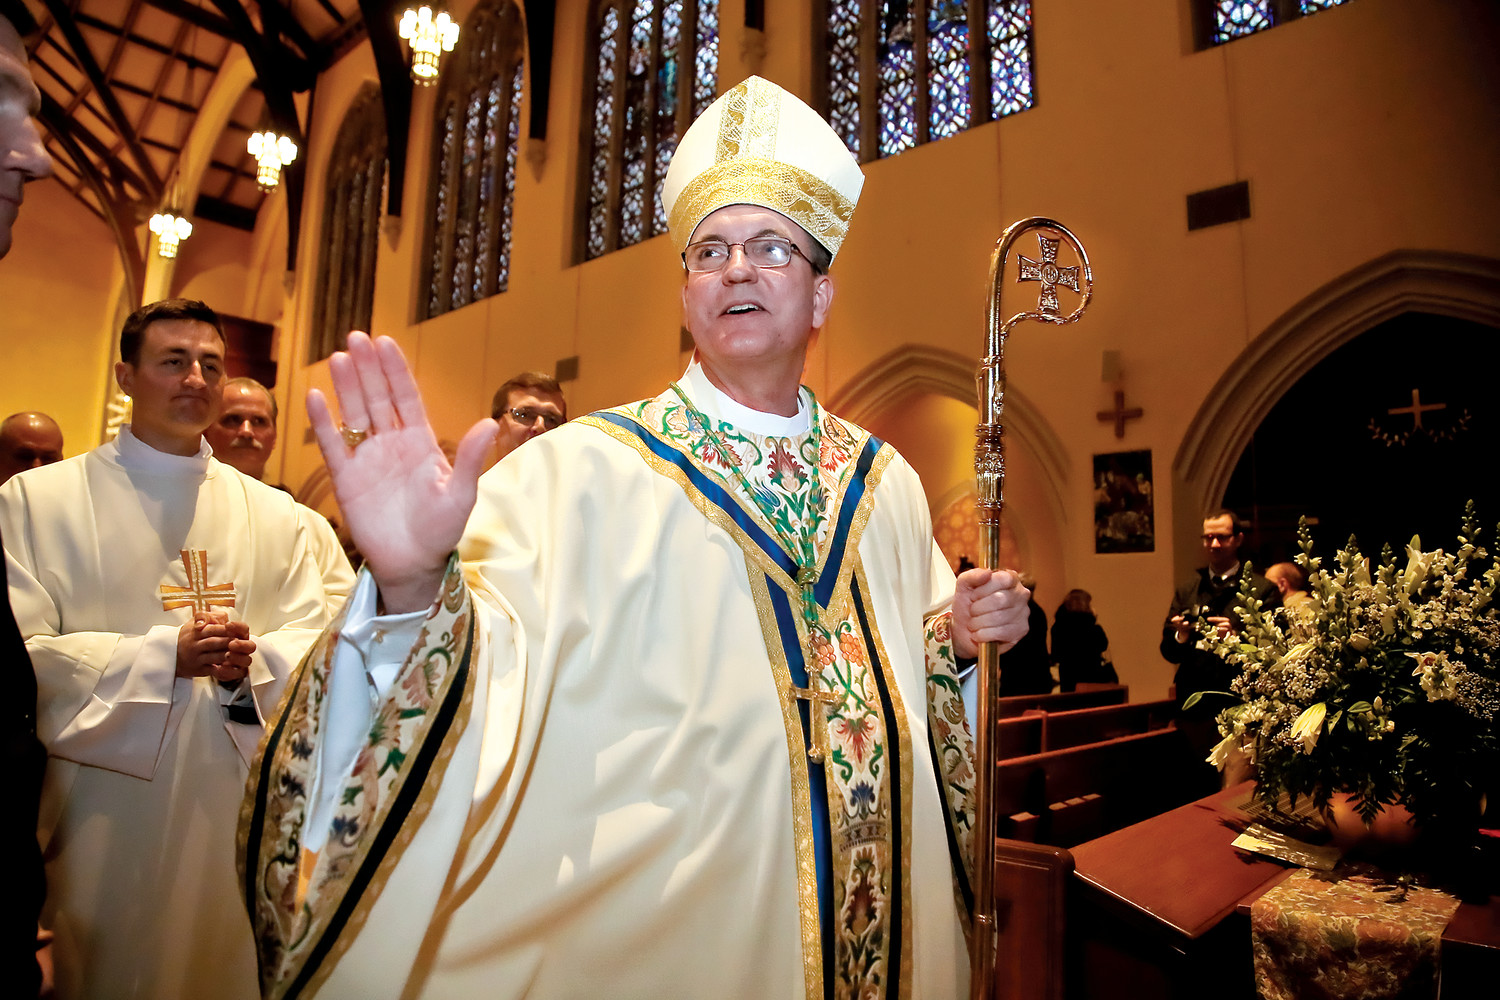 Bishop John O. Barres, installed as the leader of the Diocese of Rockville Centre last year, was named in a report detailing the alleged cover-up of clergy sexual abuse in Pennsylvania. He was bishop of the Diocese of Allentown from 2009 to 2016.